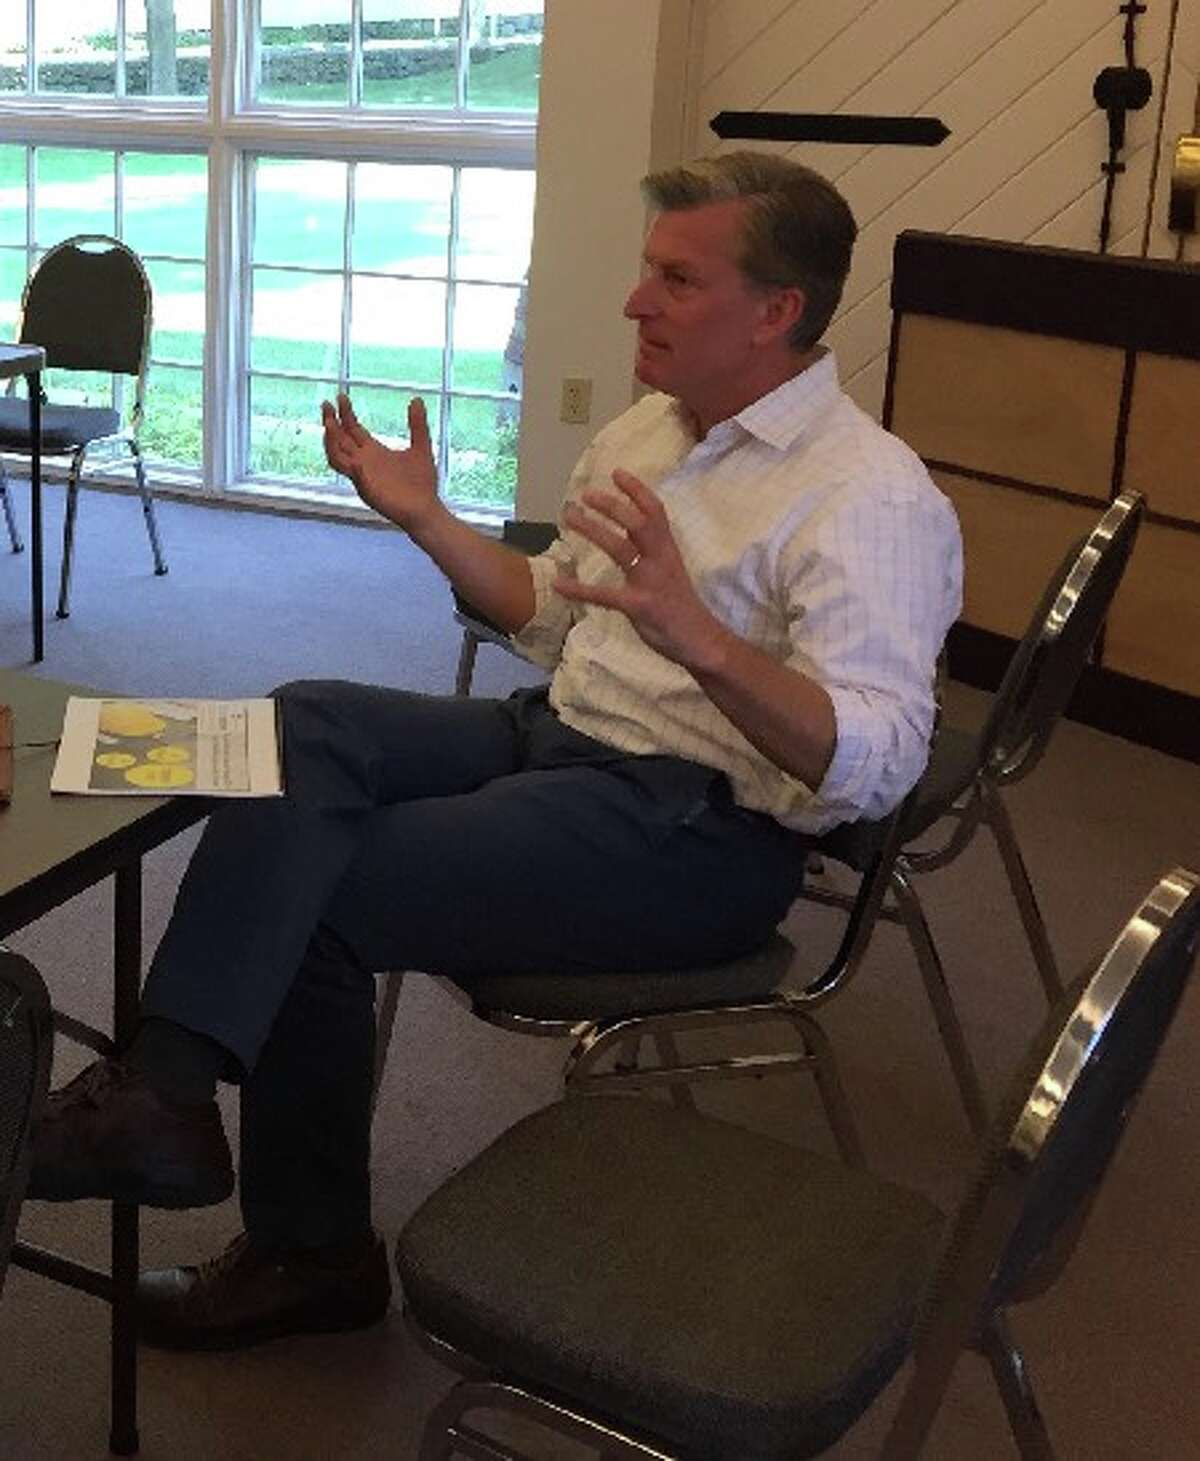 Steve Obsitnik makes a point during an interview with New Canaan Advertiser / HAN Network. - Contributed photo